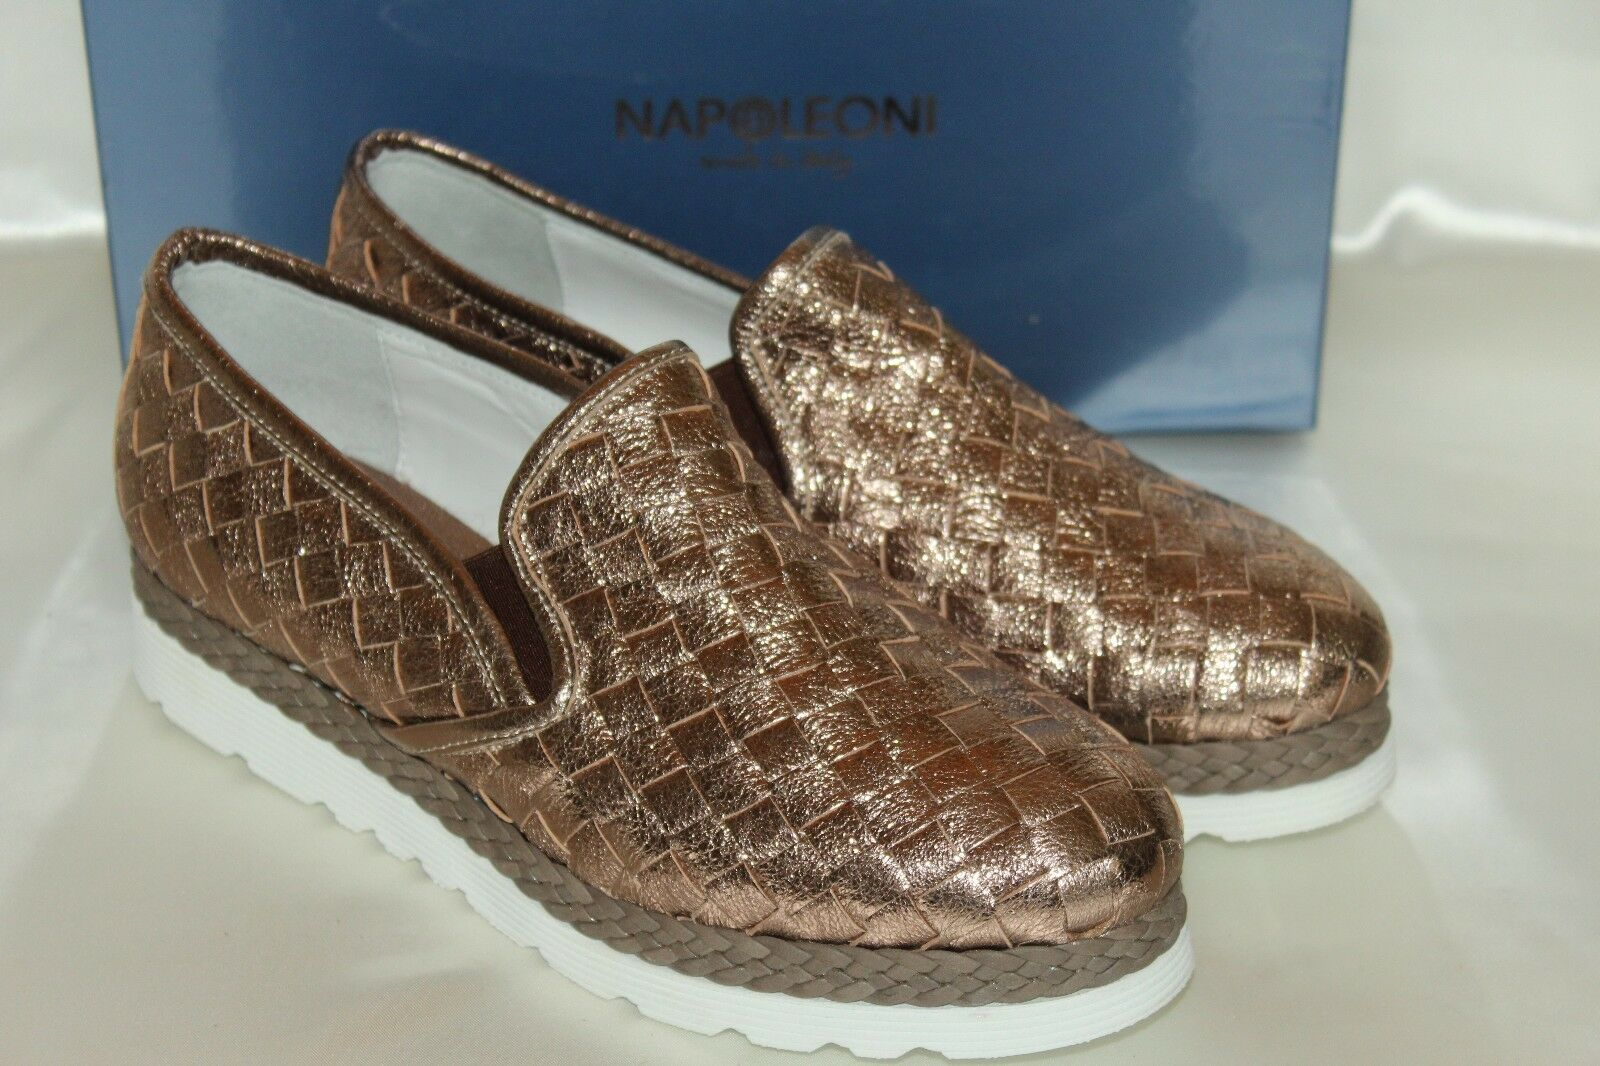 NEW! NIB! NAPOLEONI Woven Metallic Rose Gold Platform Leather Platform Gold Loafers EU39 ITALY 853ff2